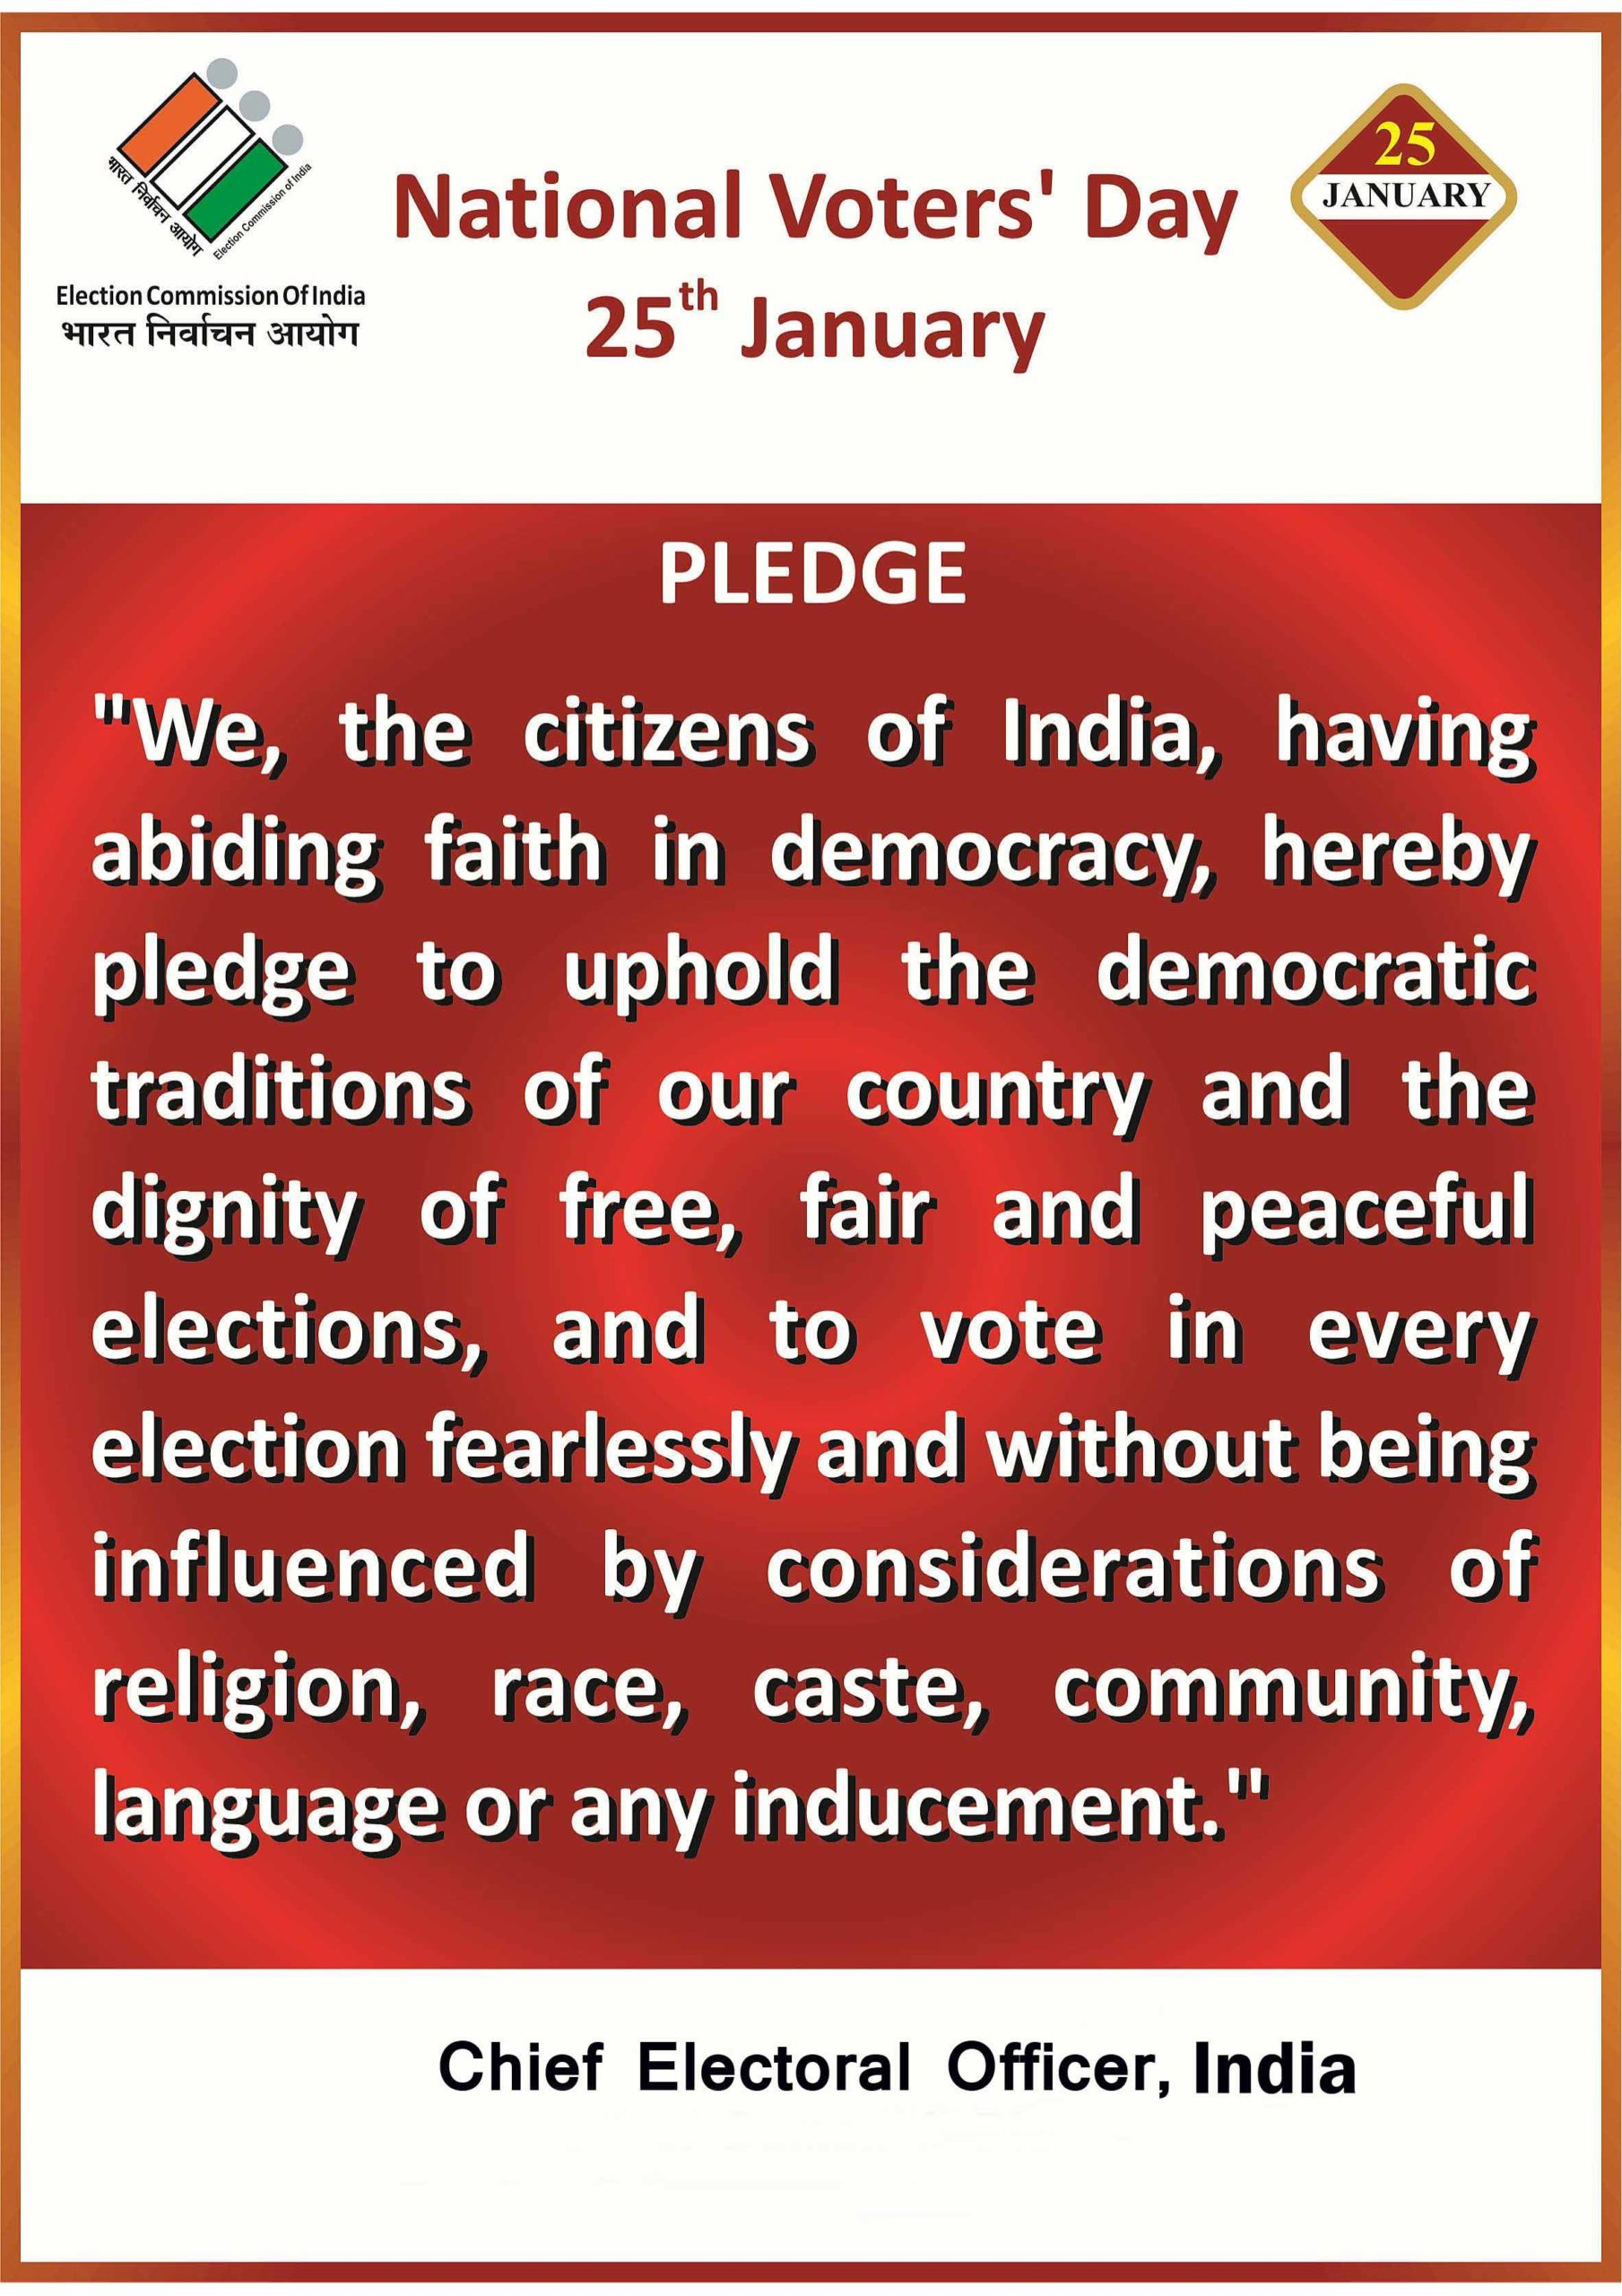 National Voters Day Pledge